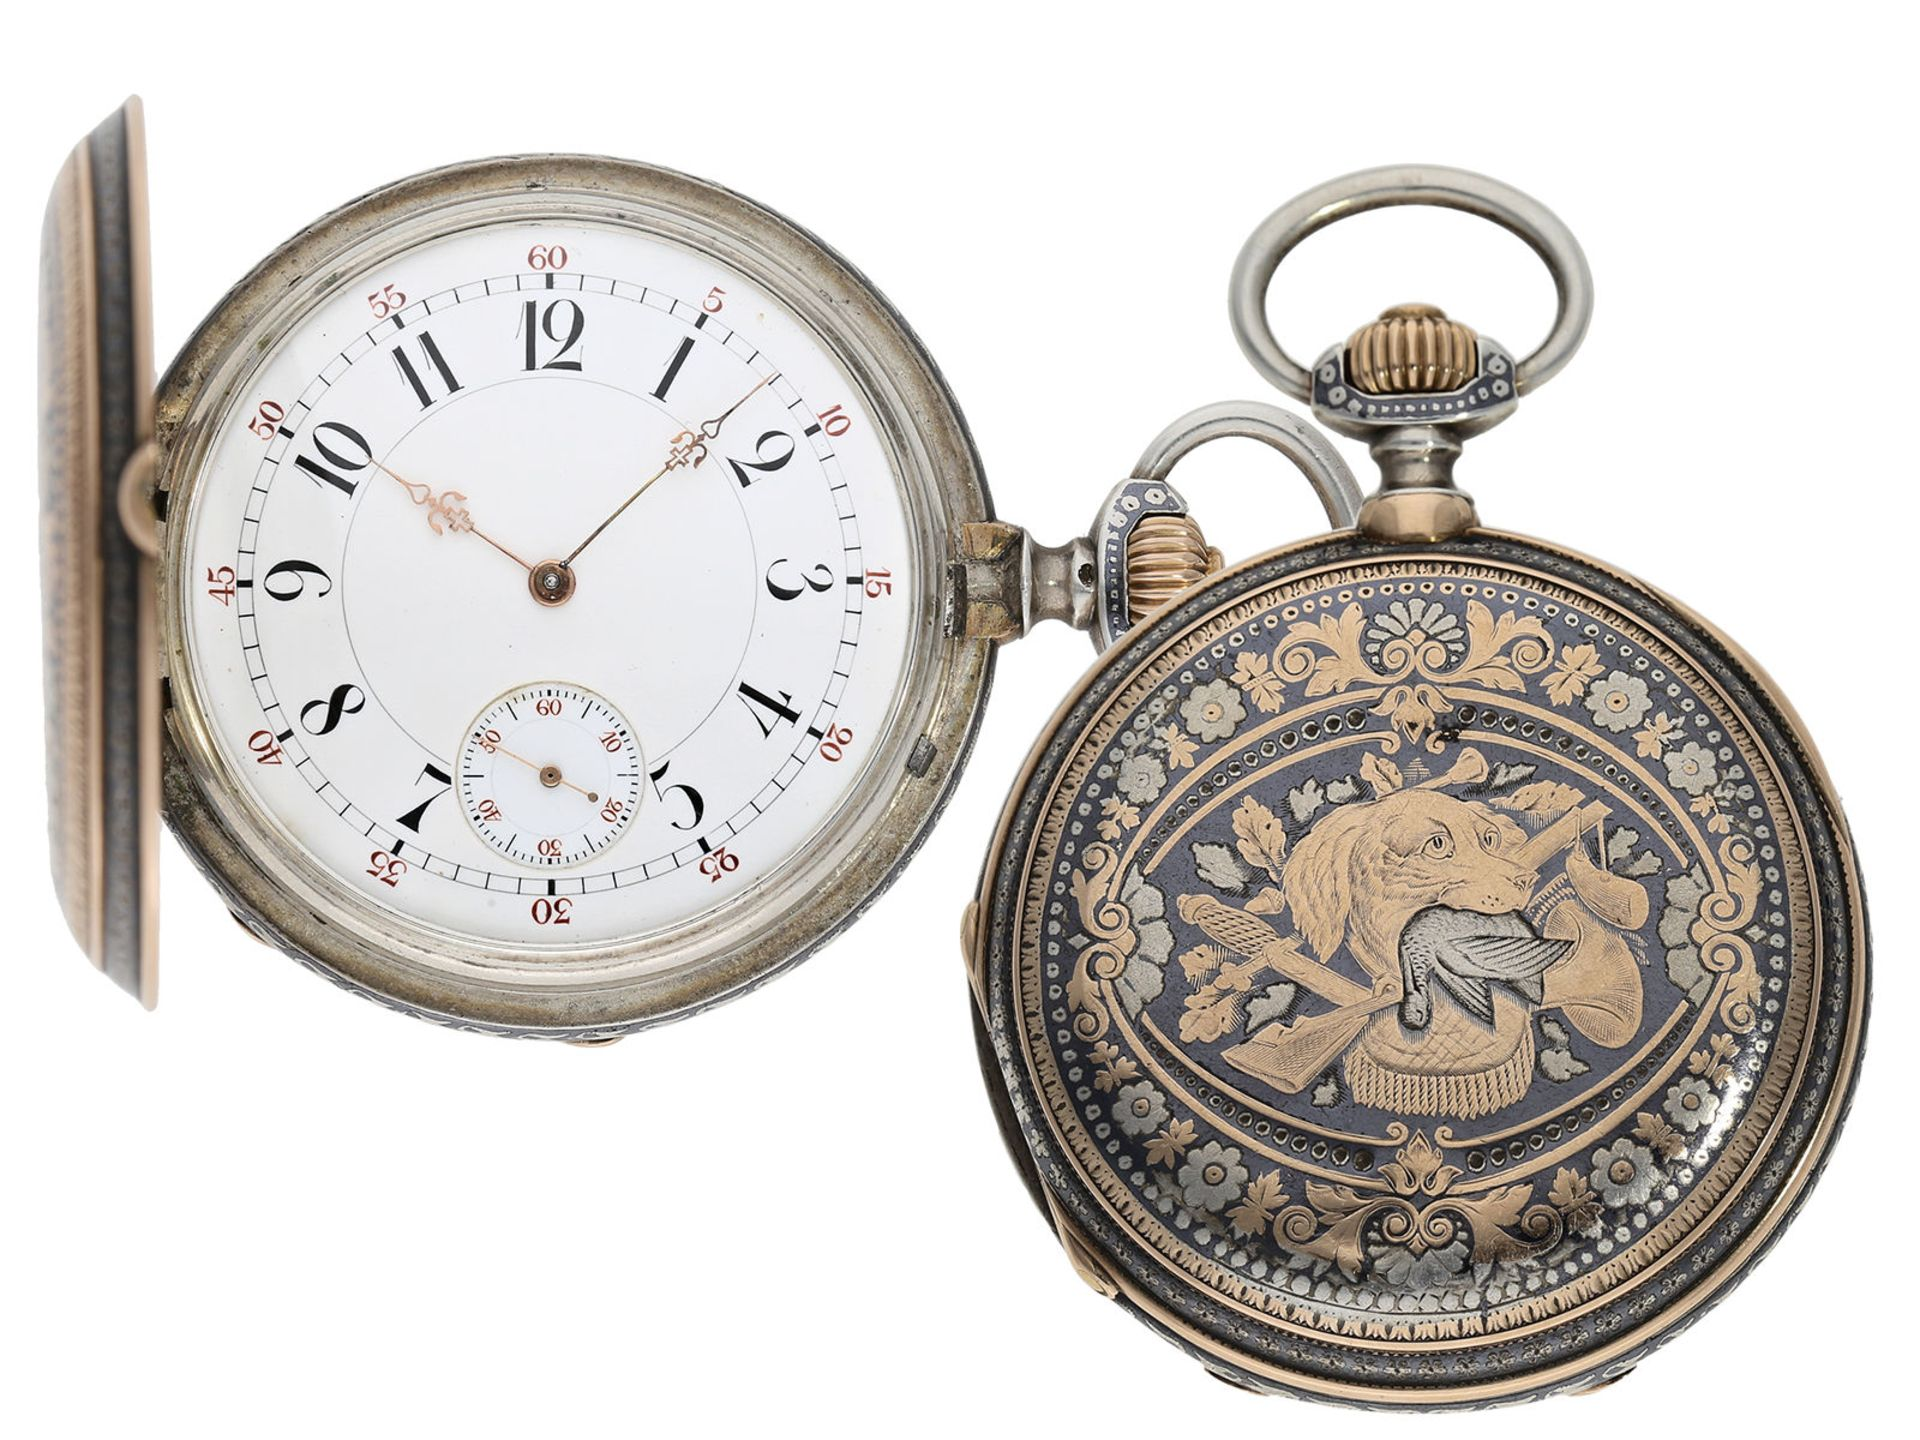 Pocket watch: extremely splendid Tula hunting case watch pink gold/ silver, high quality